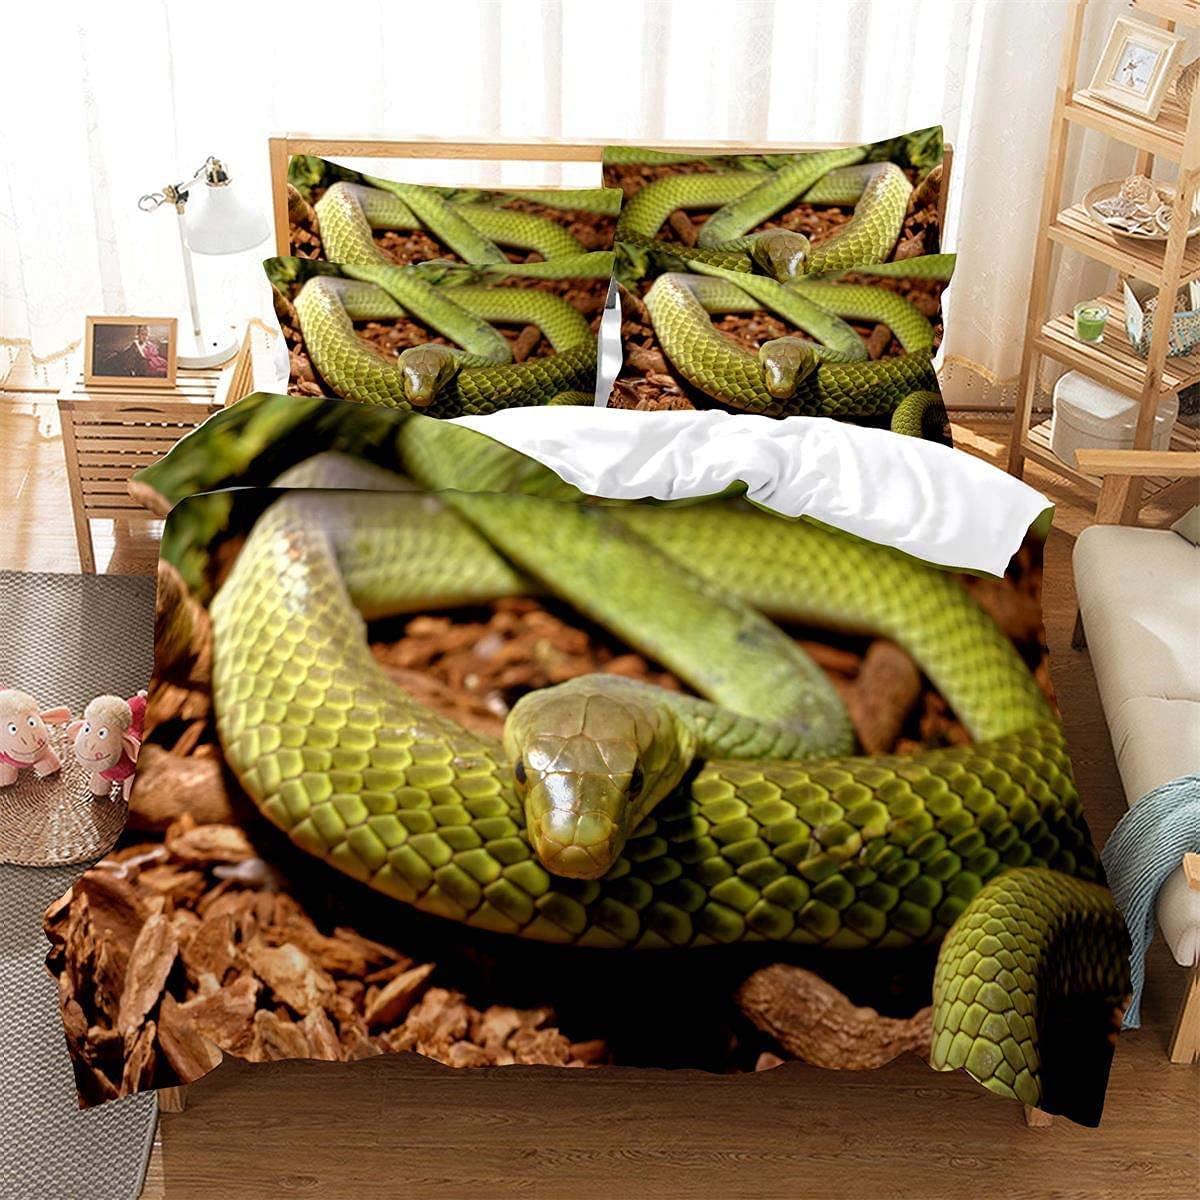 QINGER Manufacturer direct delivery Snake-Shaped Max 65% OFF Quilt Cover Python 3D Reptile